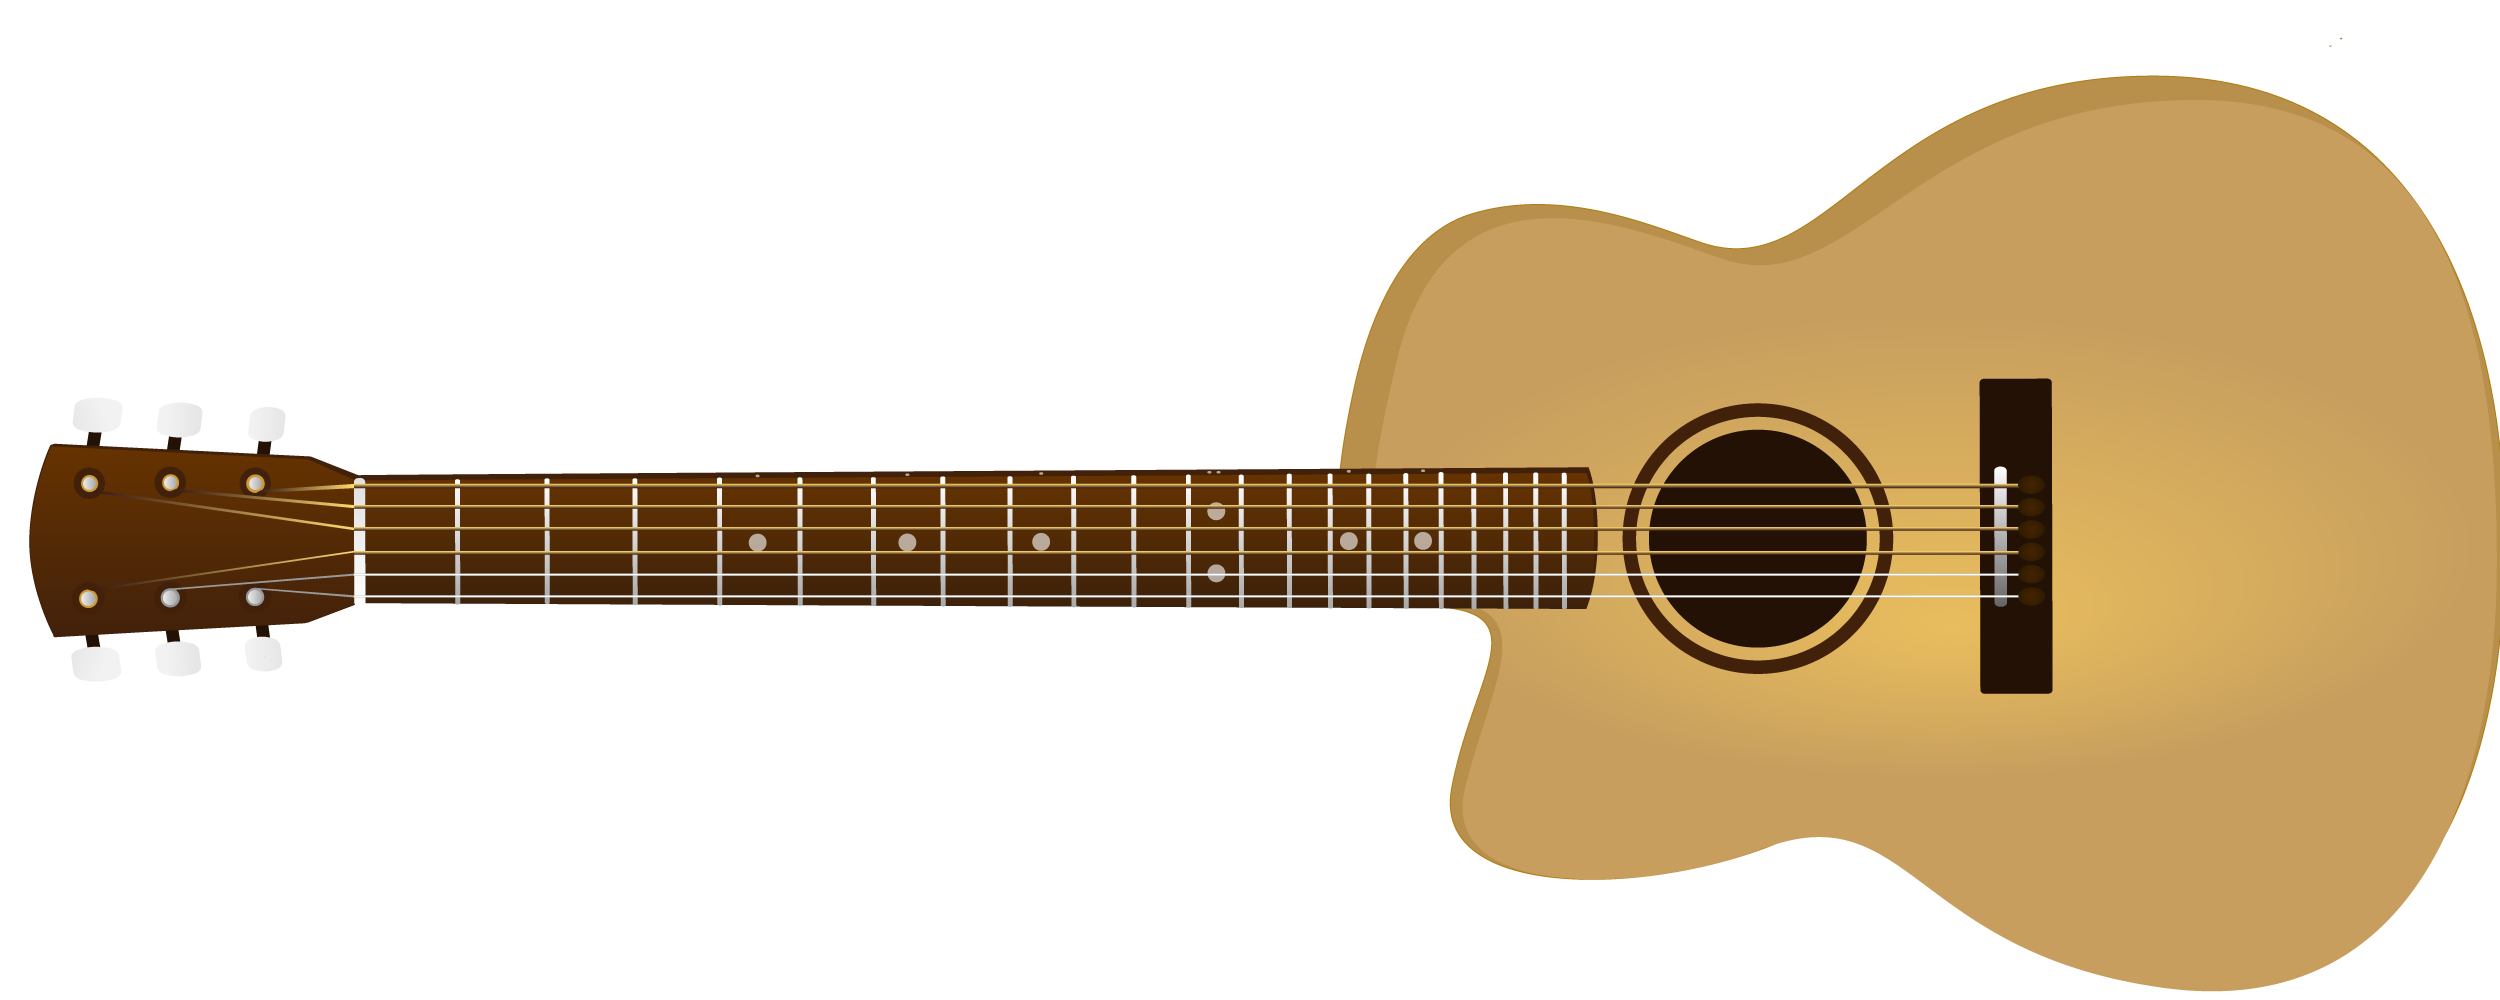 svg download Acoustic clipart guitar spain. Spanish free on